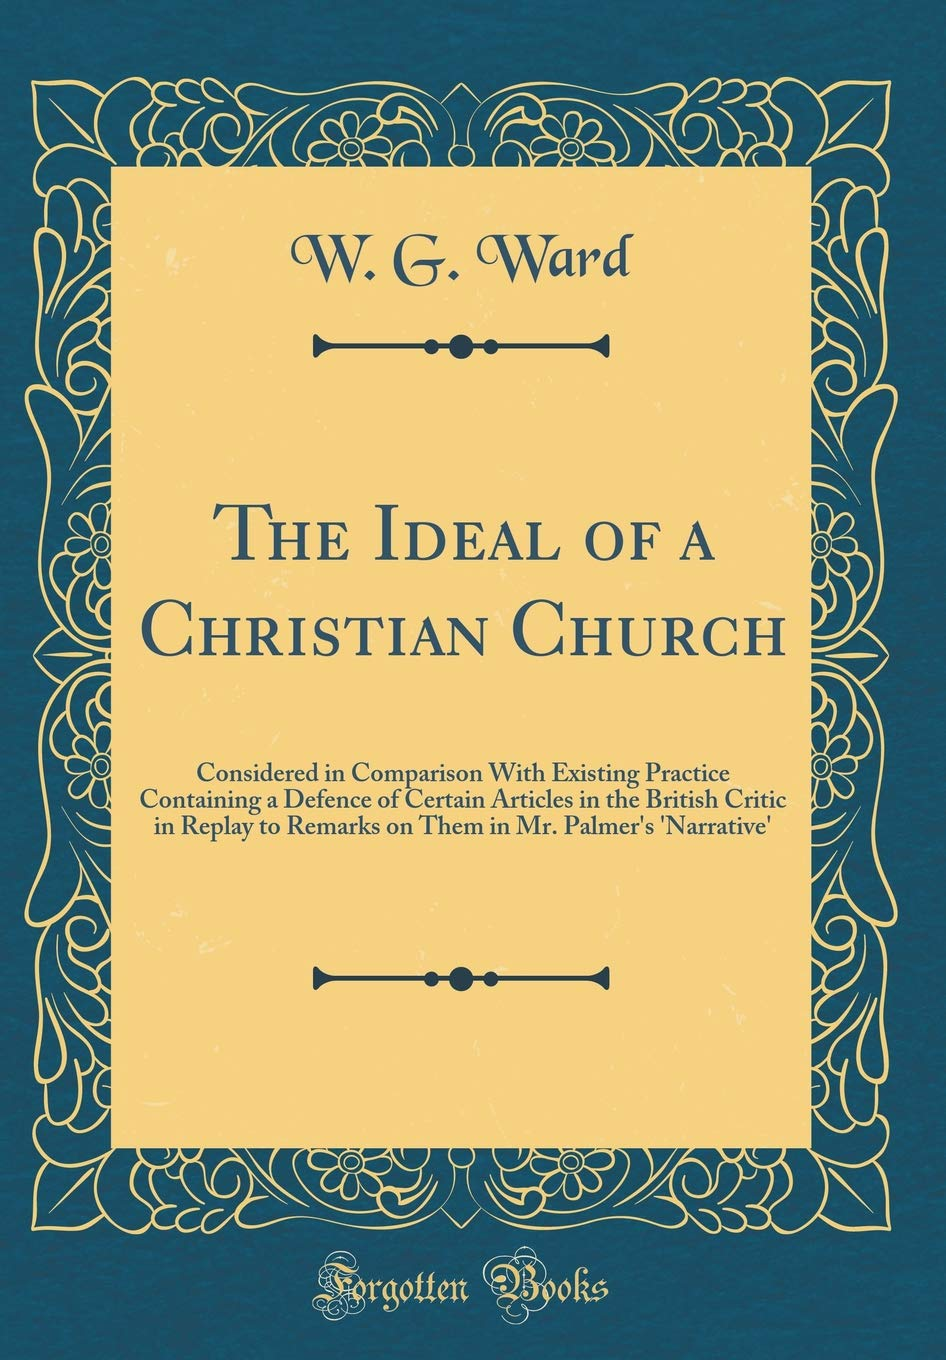 Read Online The Ideal of a Christian Church: Considered in Comparison With Existing Practice Containing a Defence of Certain Articles in the British Critic in ... in Mr. Palmer's 'Narrative' (Classic Reprint) ebook